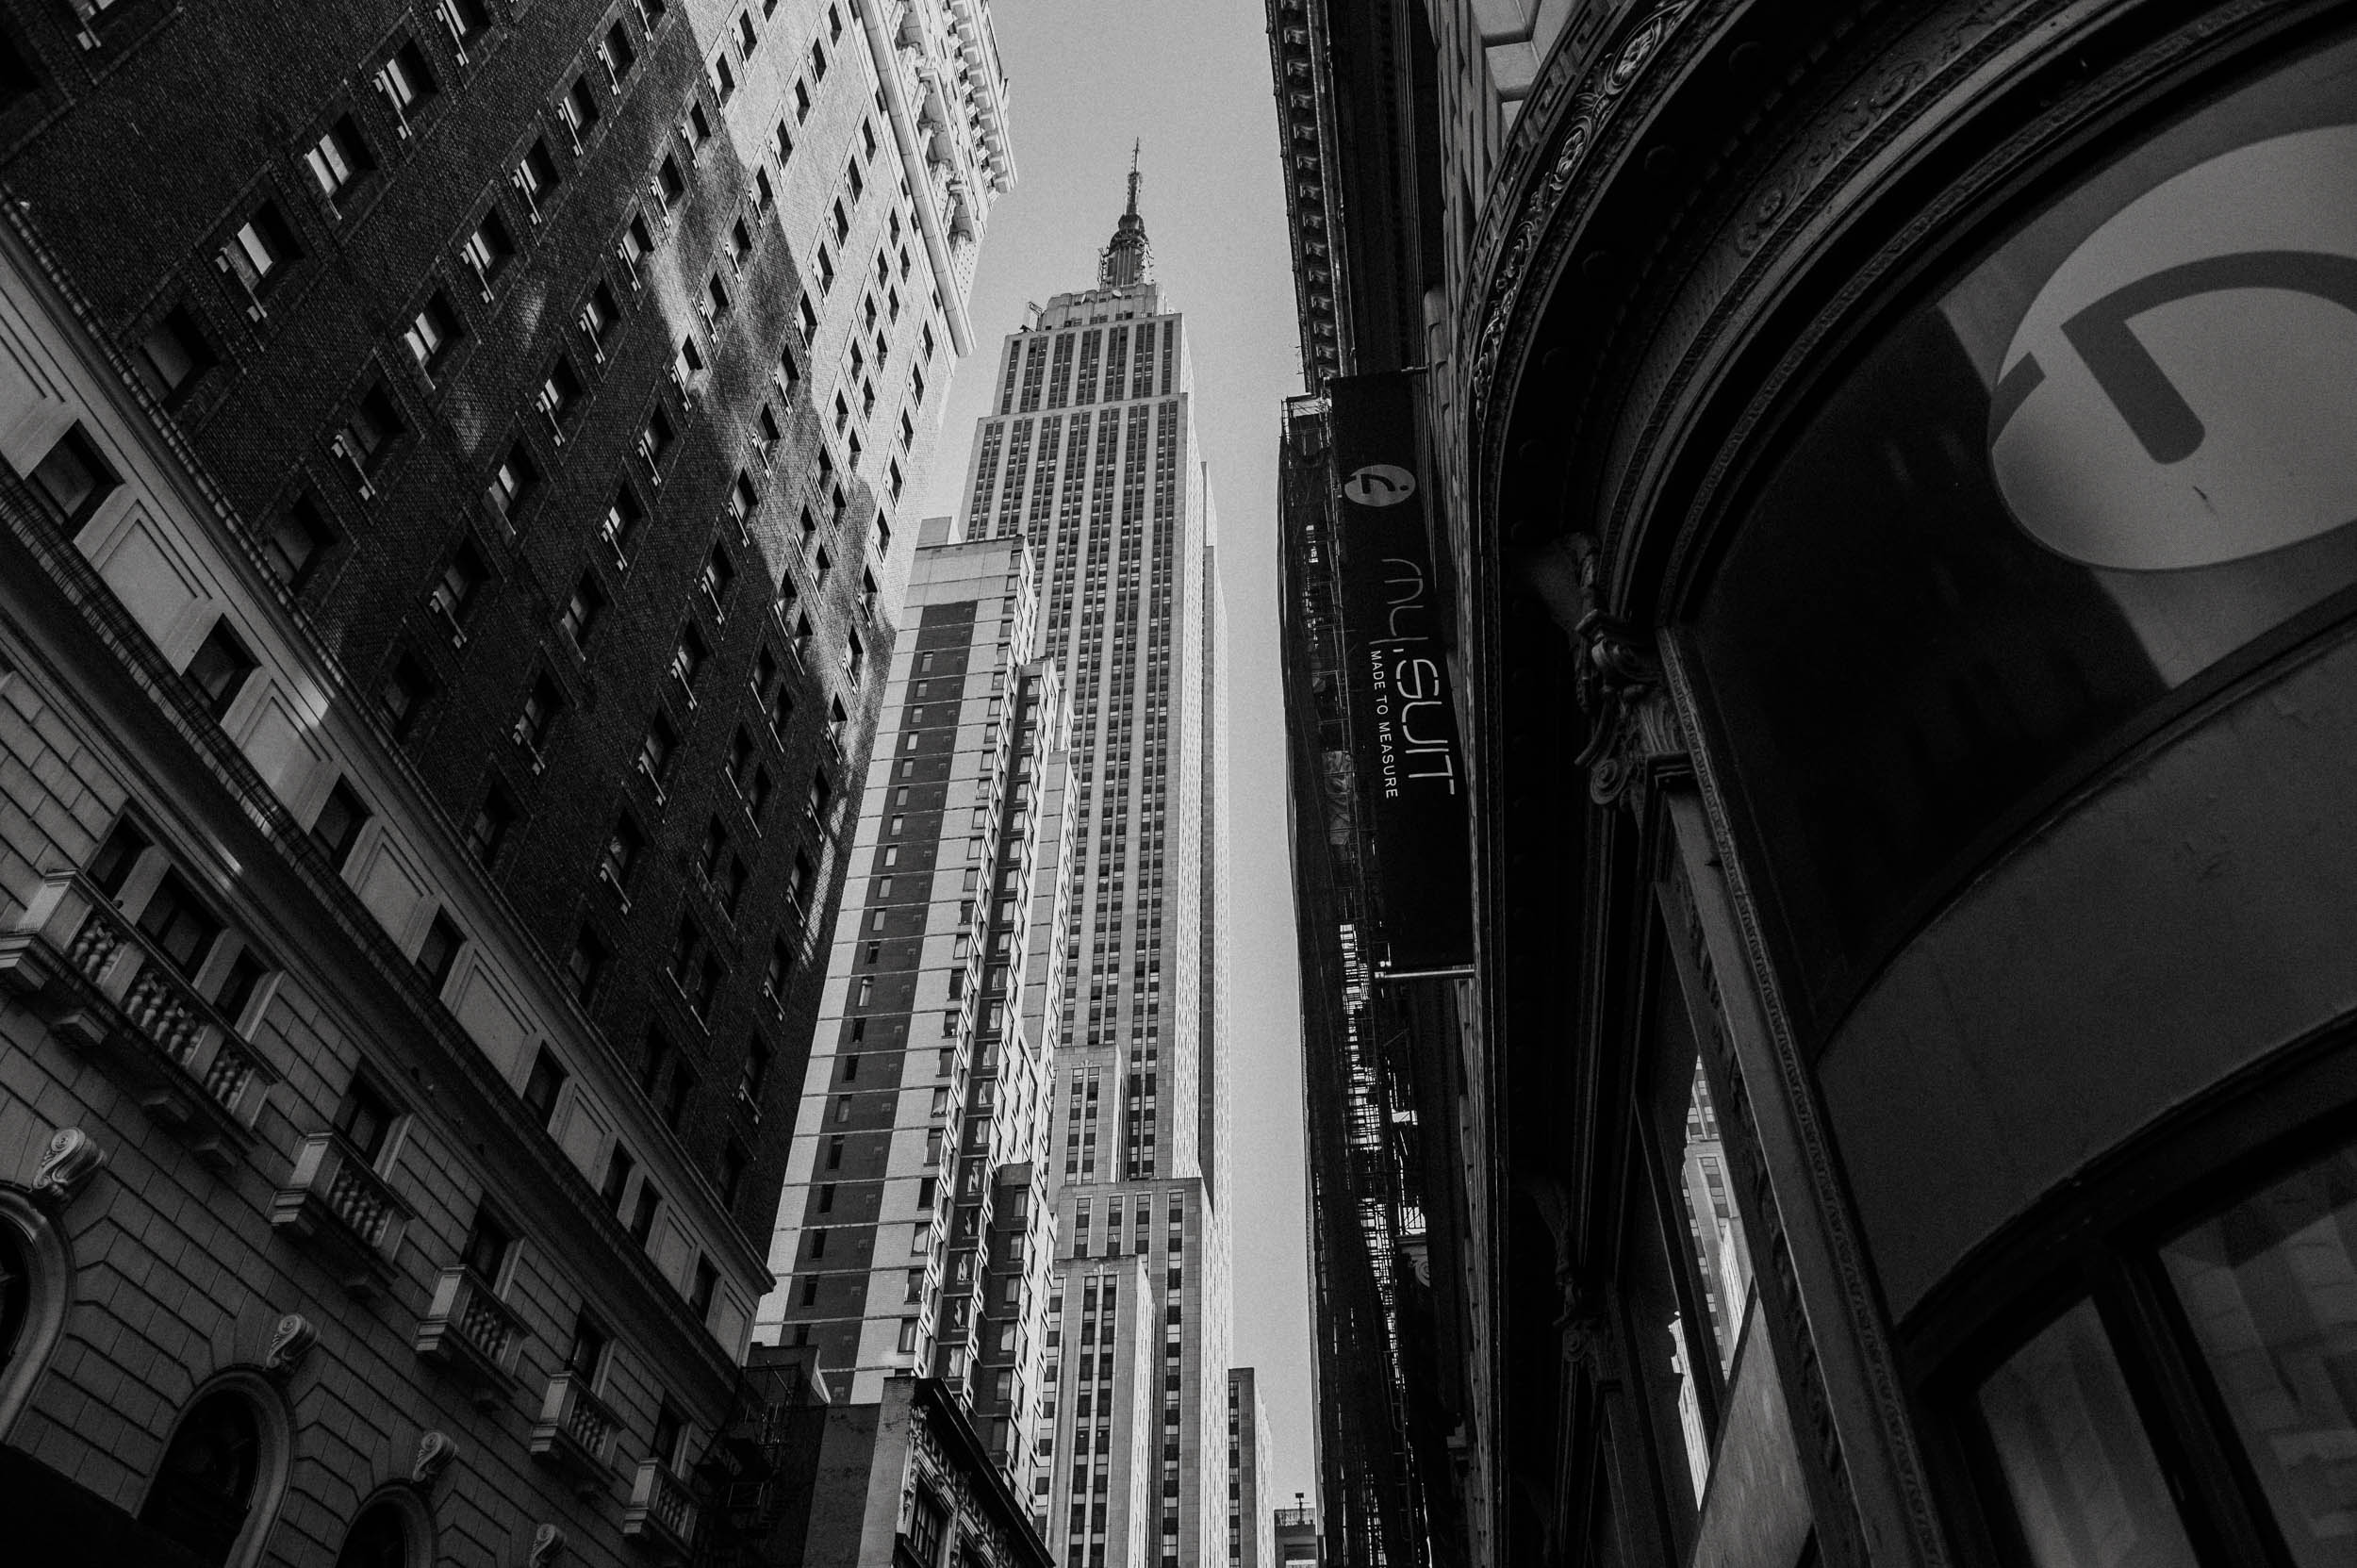 NYC-LoRes-4.jpg